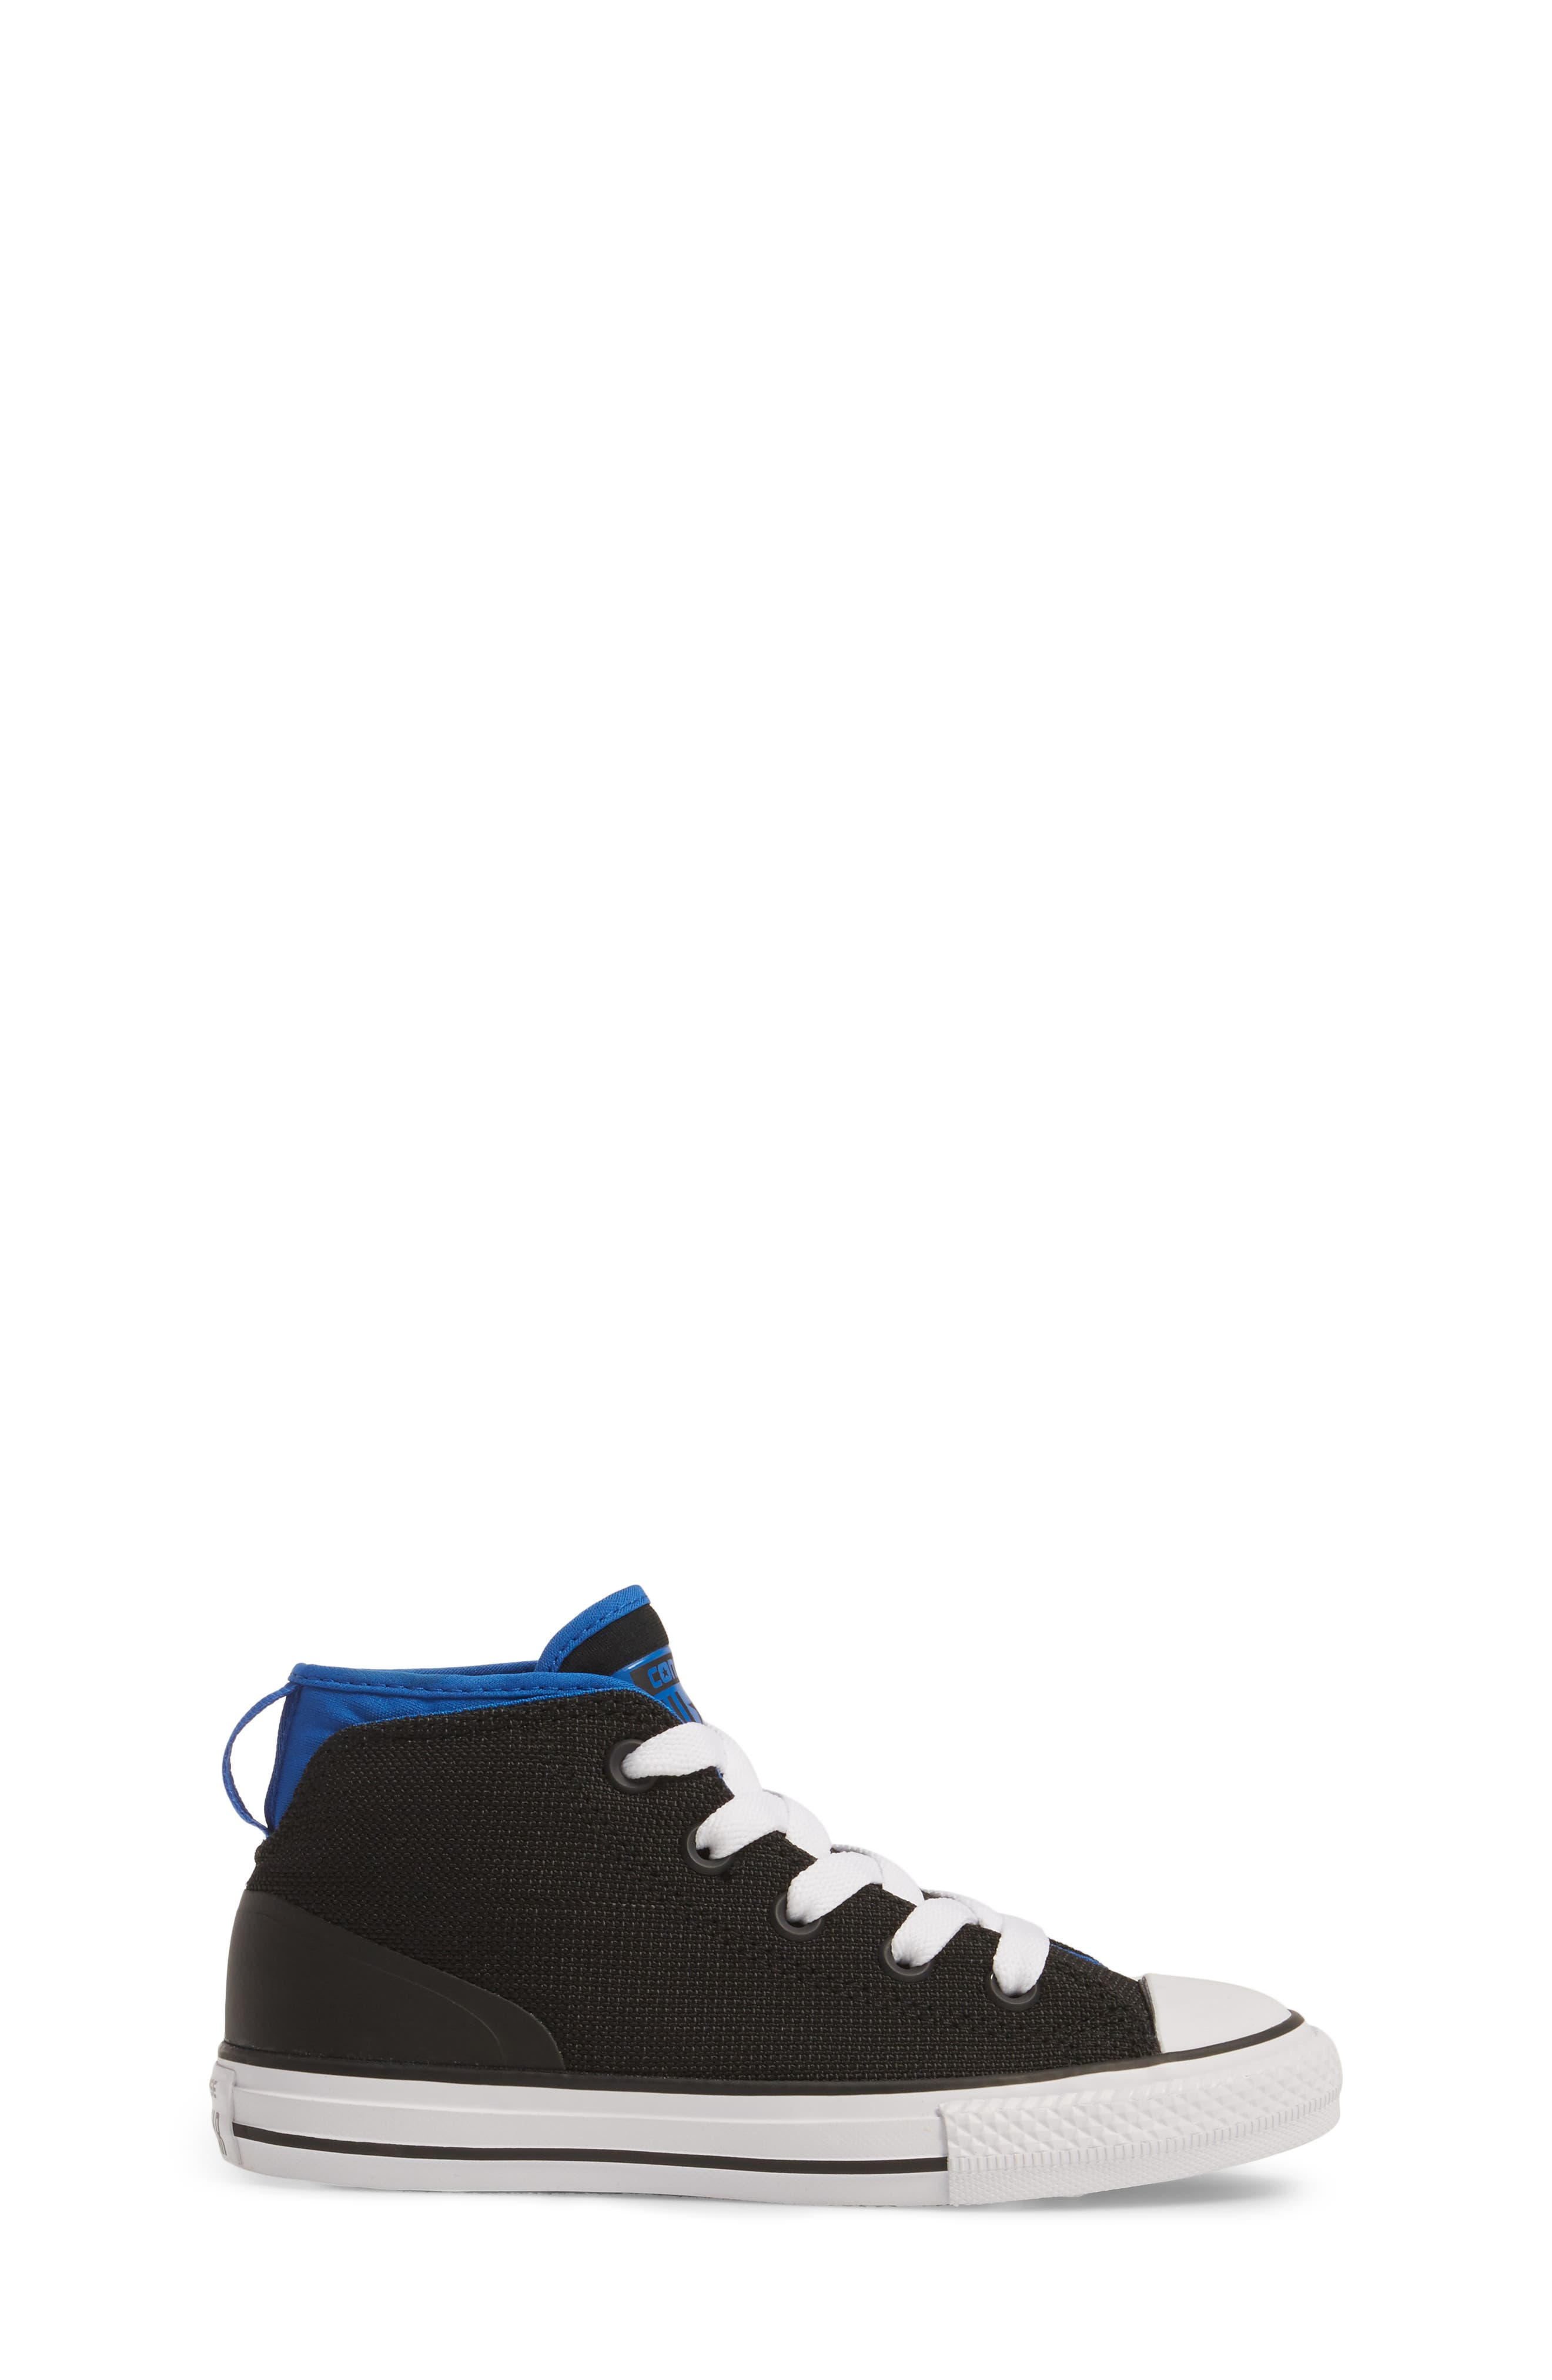 Chuck Taylor<sup>®</sup> All Star<sup>®</sup> Syde Street High Top Sneaker,                             Alternate thumbnail 3, color,                             001